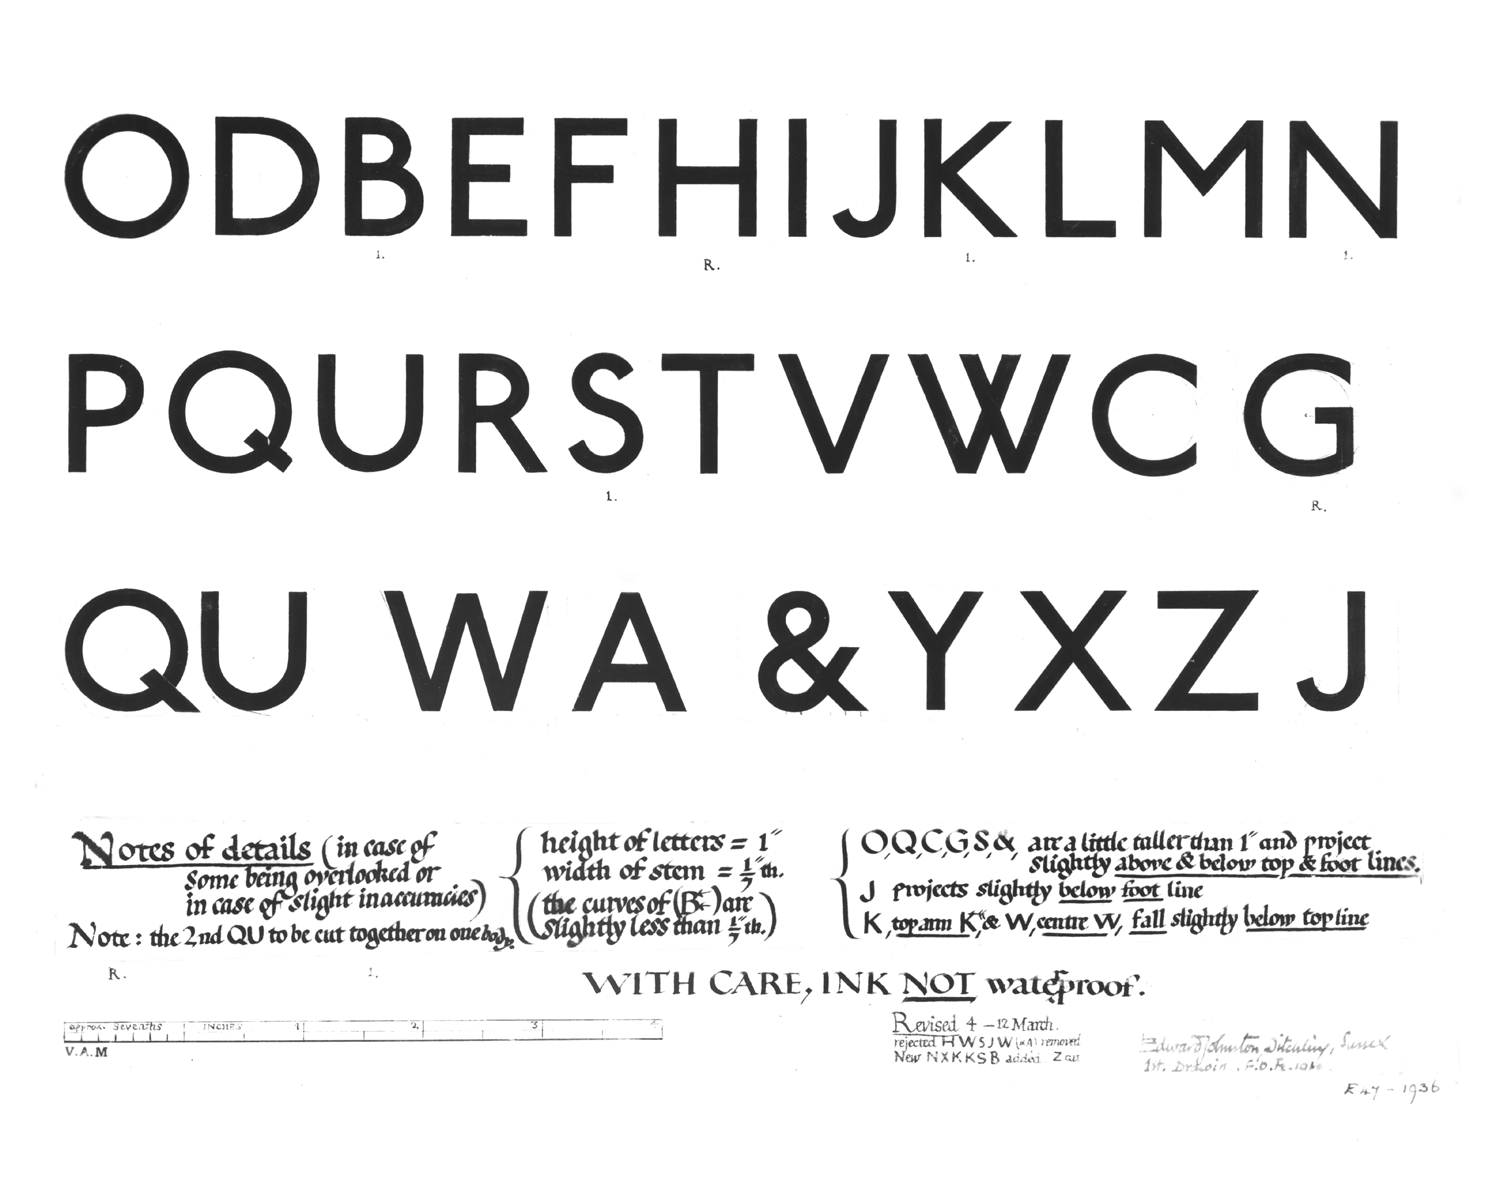 London UndergroundS Iconic Johnston Sans Typeface Is  Years Old